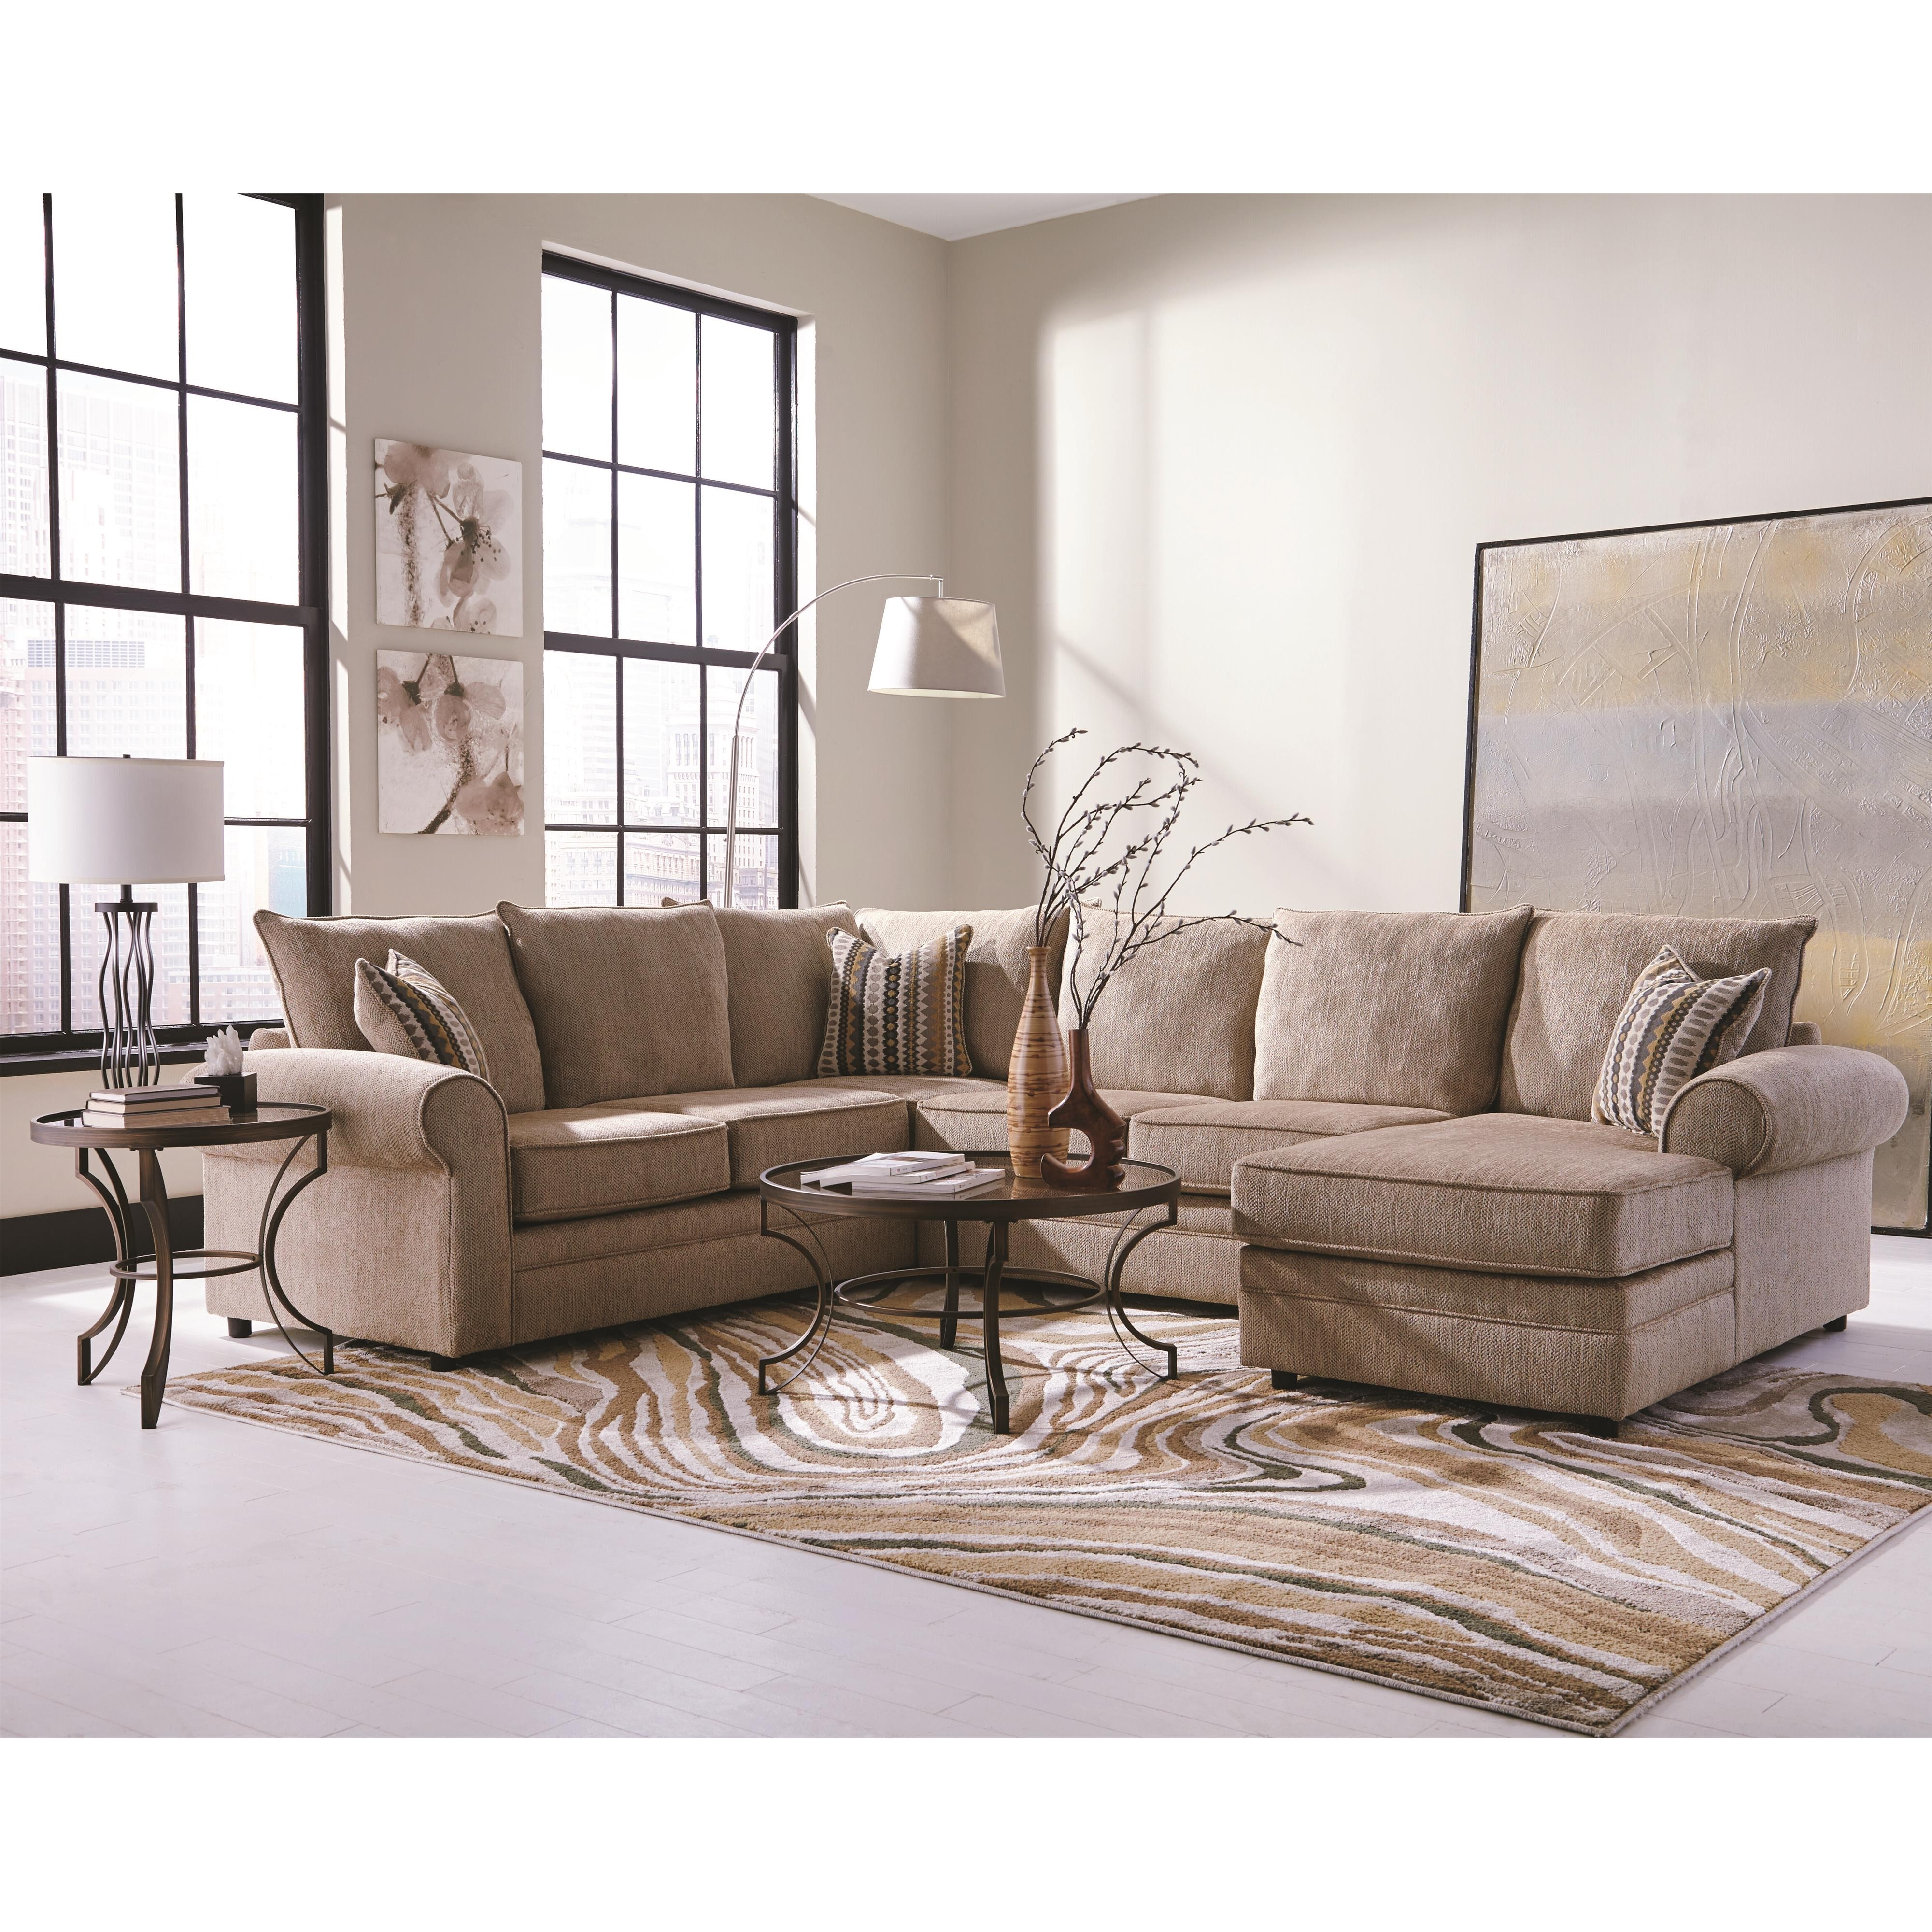 Coaster Fairhaven Cream Colored U Shaped Sectional With Chaise In U Shaped Sectionals (Image 4 of 10)